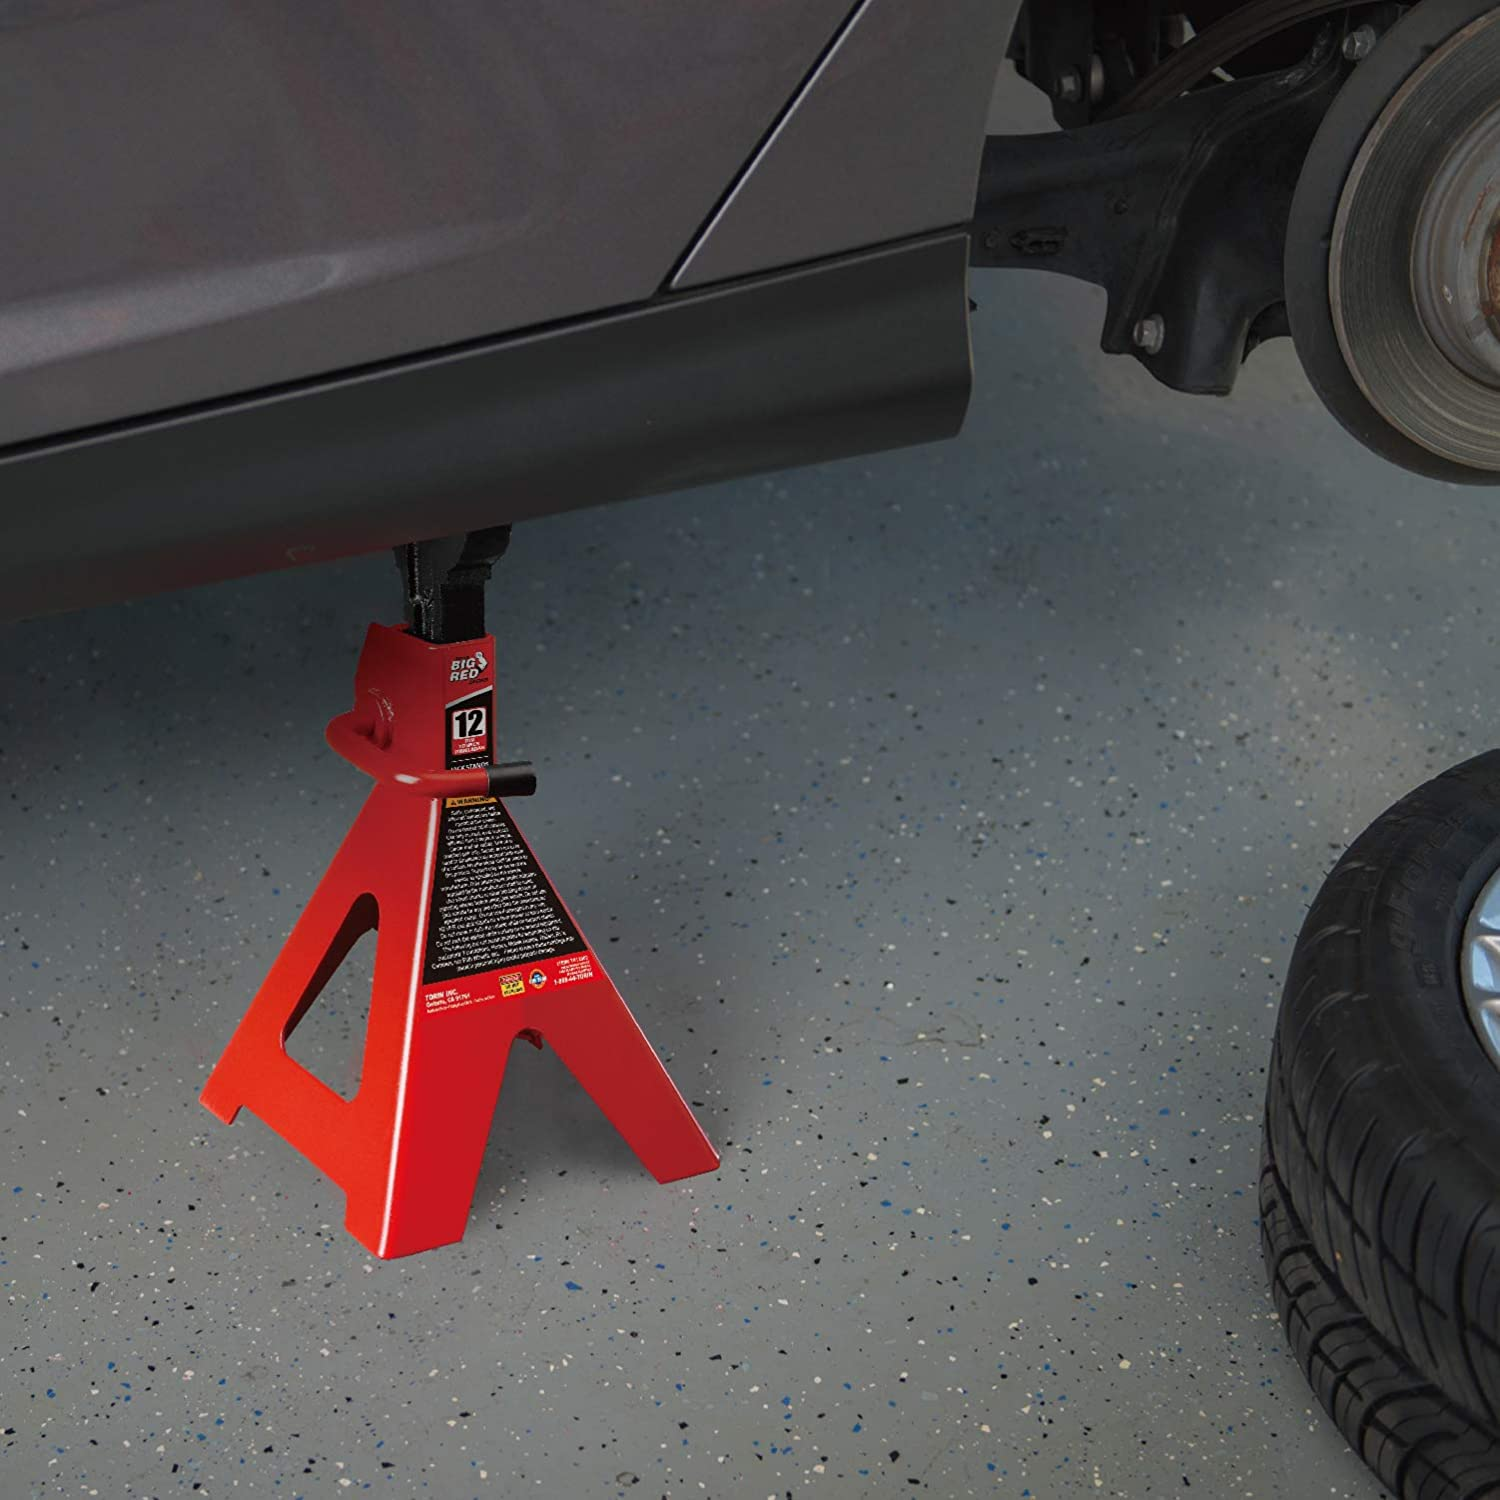 Big Red T41202 Torin Steel Jack Stand in use